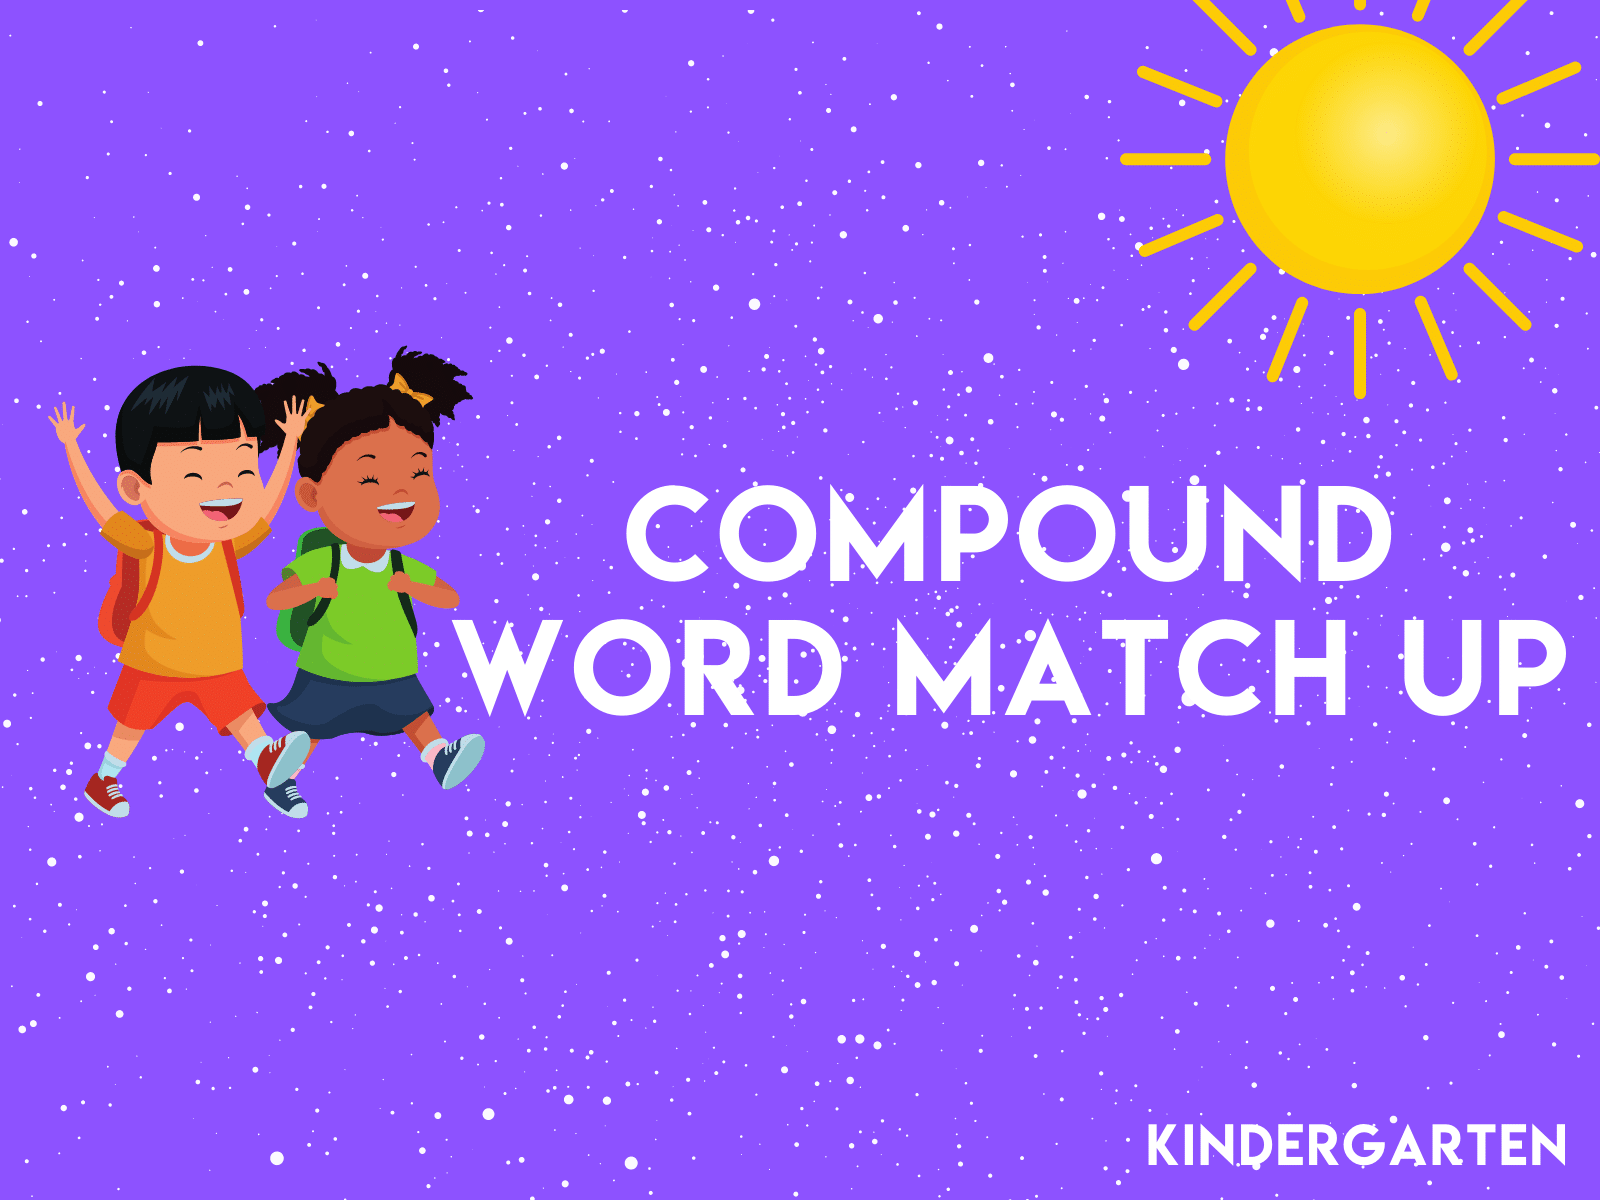 Cut the picture cards, mix them up, and have try this compound word match up with your kindergarten student.